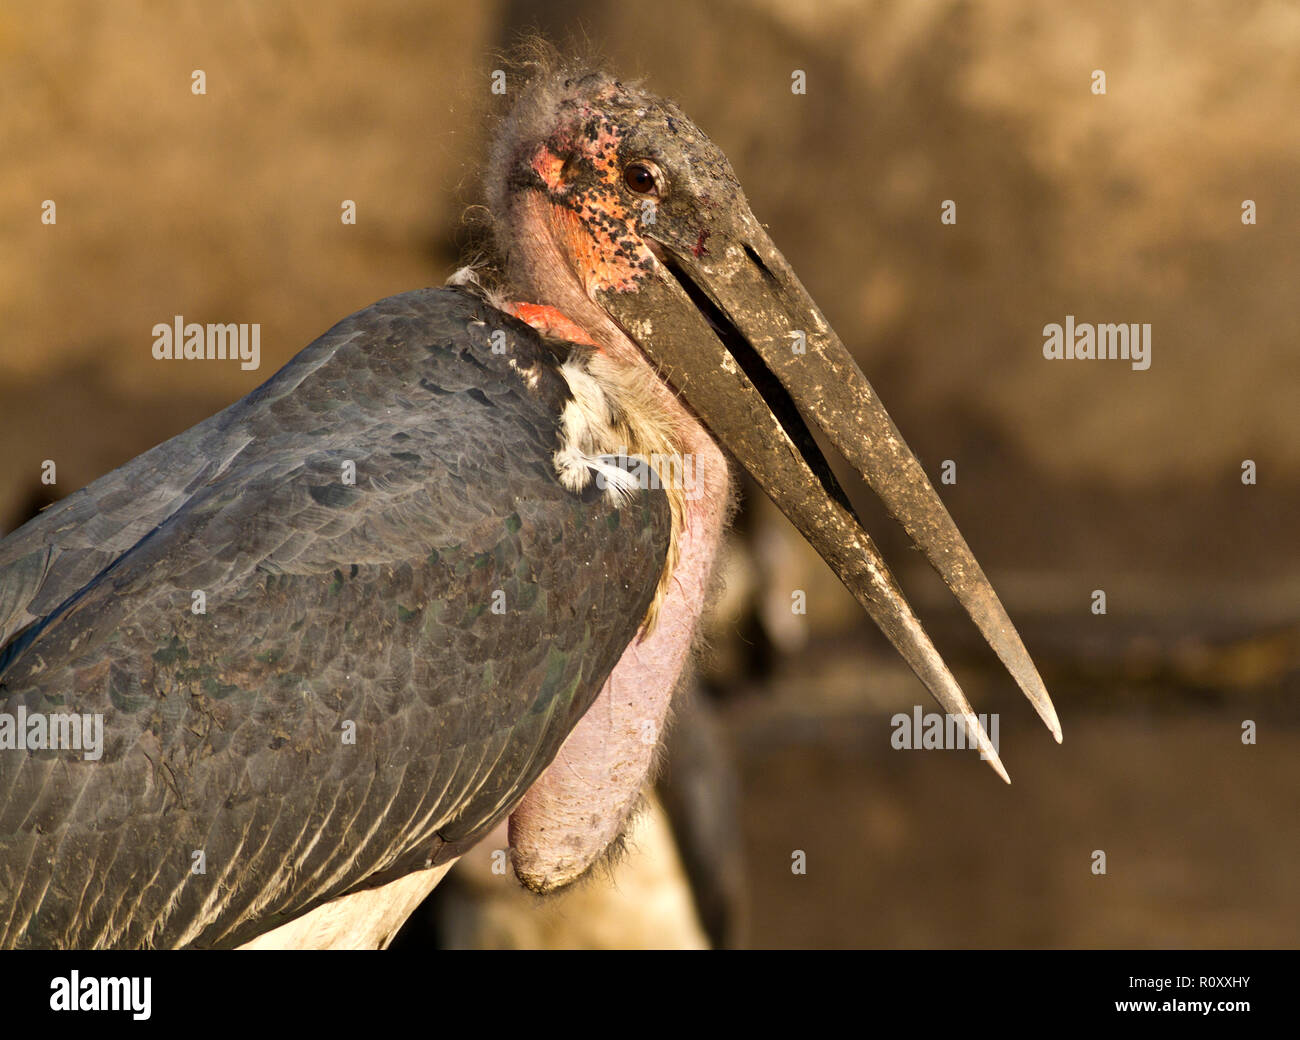 The Marabou Stork in portrait shows clear features of an avian scavenger and the bill of an aquatic predator - Stock Image